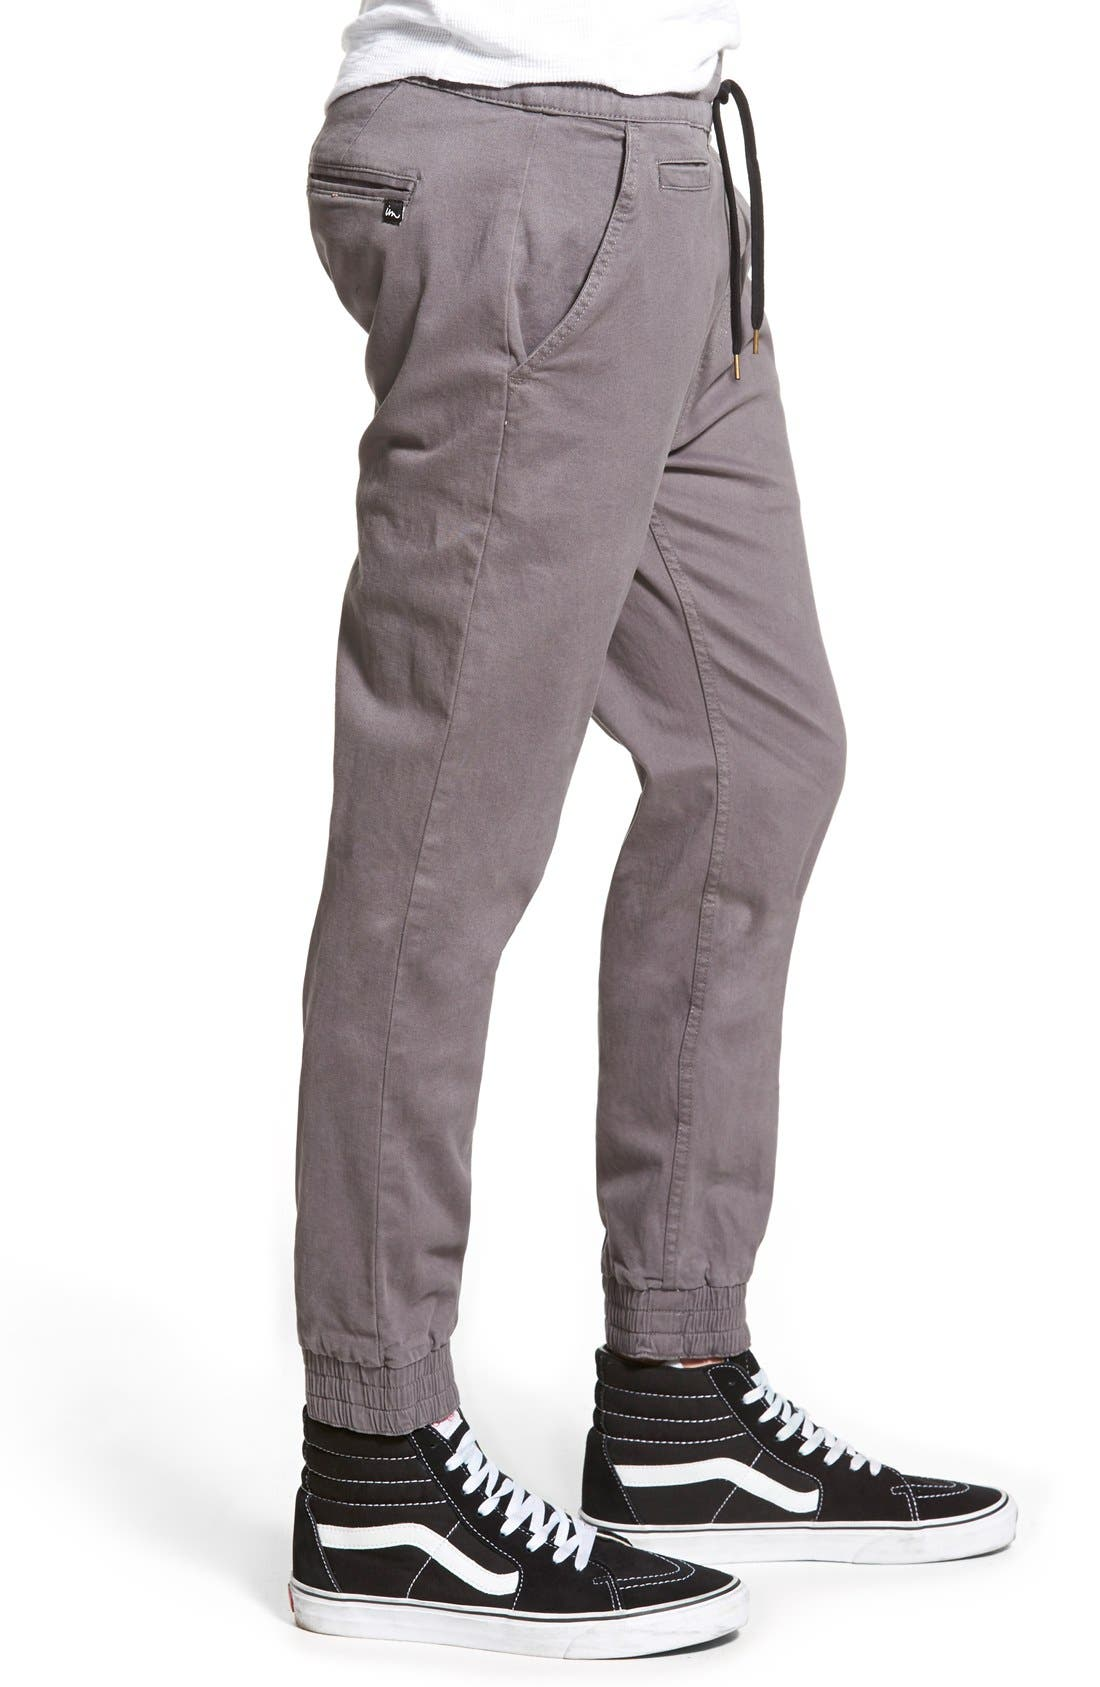 'Denny' Woven Jogger Pants,                             Alternate thumbnail 3, color,                             Charcoal